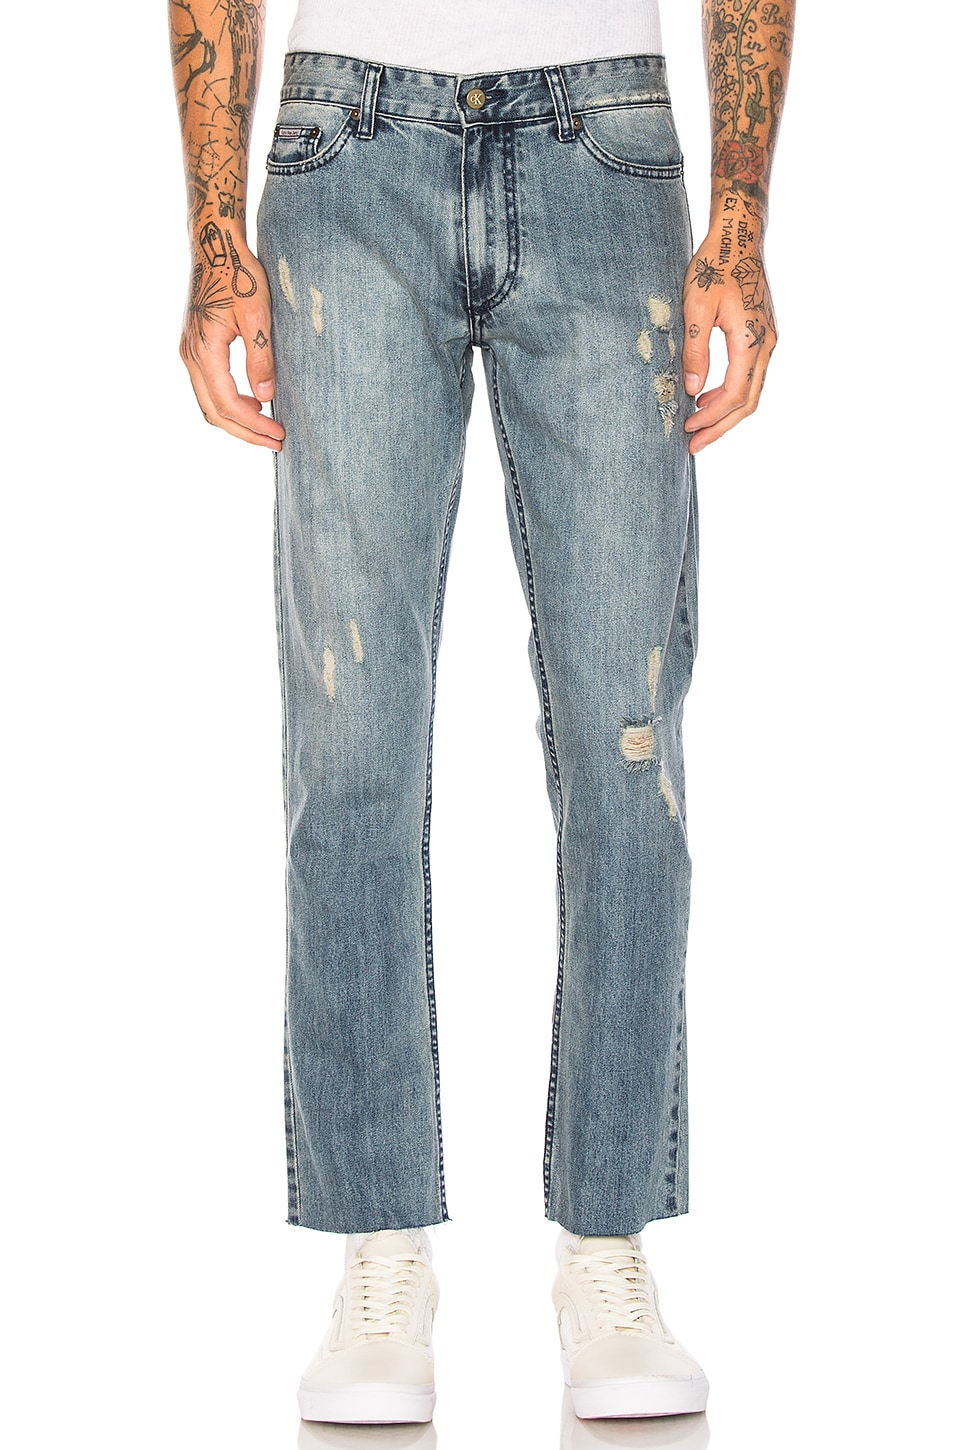 Photo of Slim Logo 5 PKT Frayed Jeans by Calvin Klein men clothes